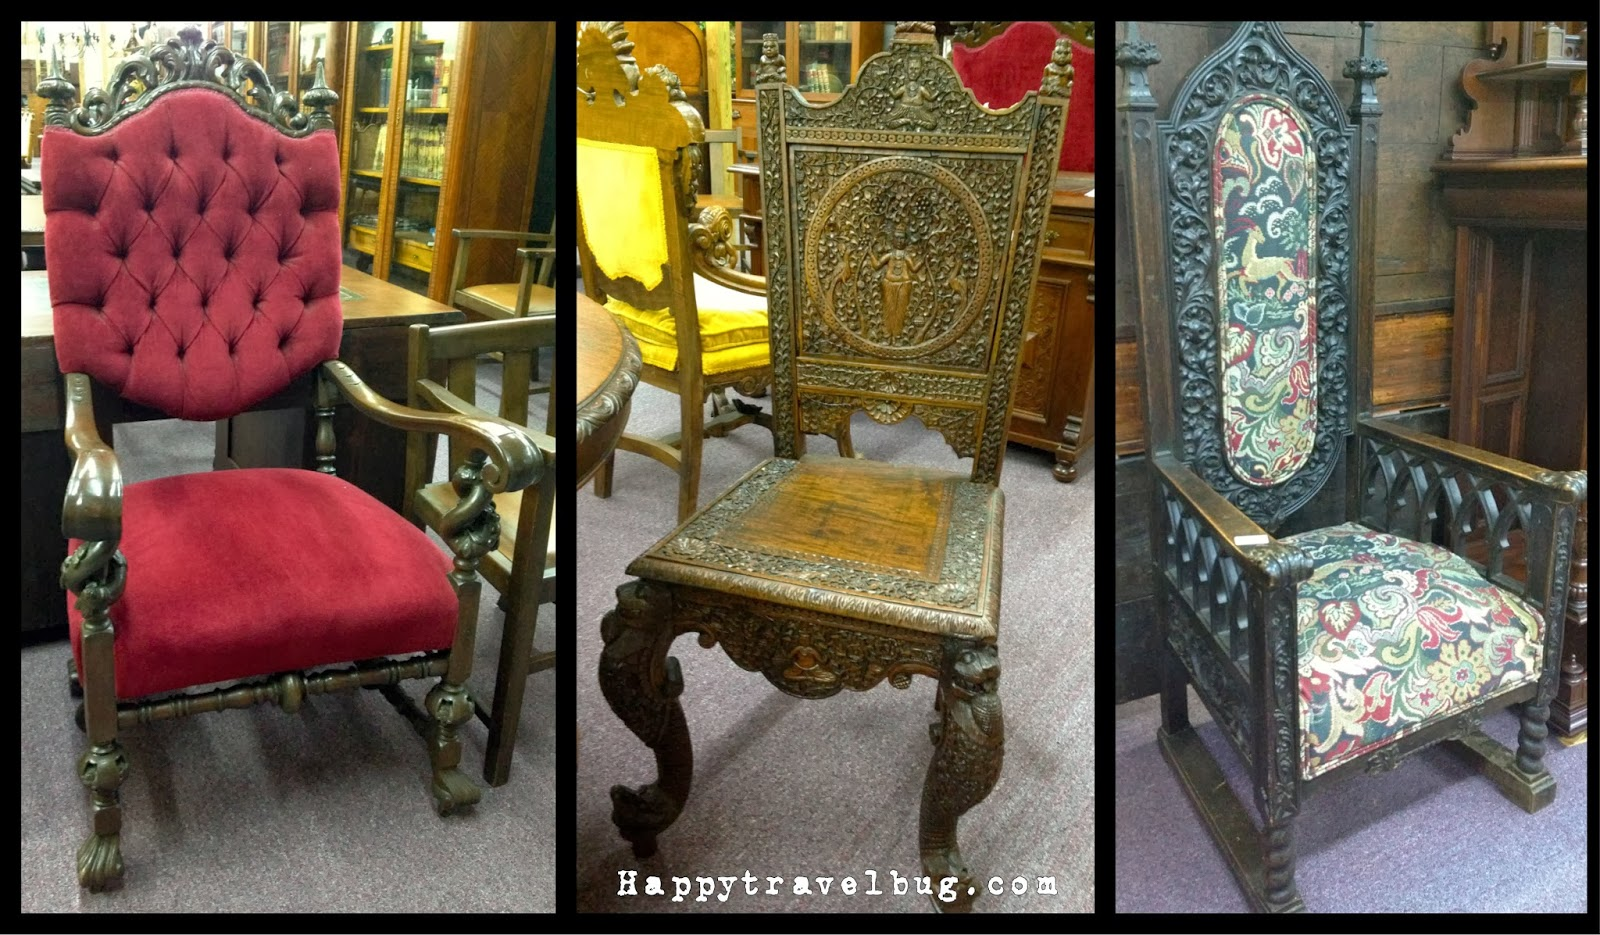 Antique chairs from Morris Antiques in Keo, Arkansas